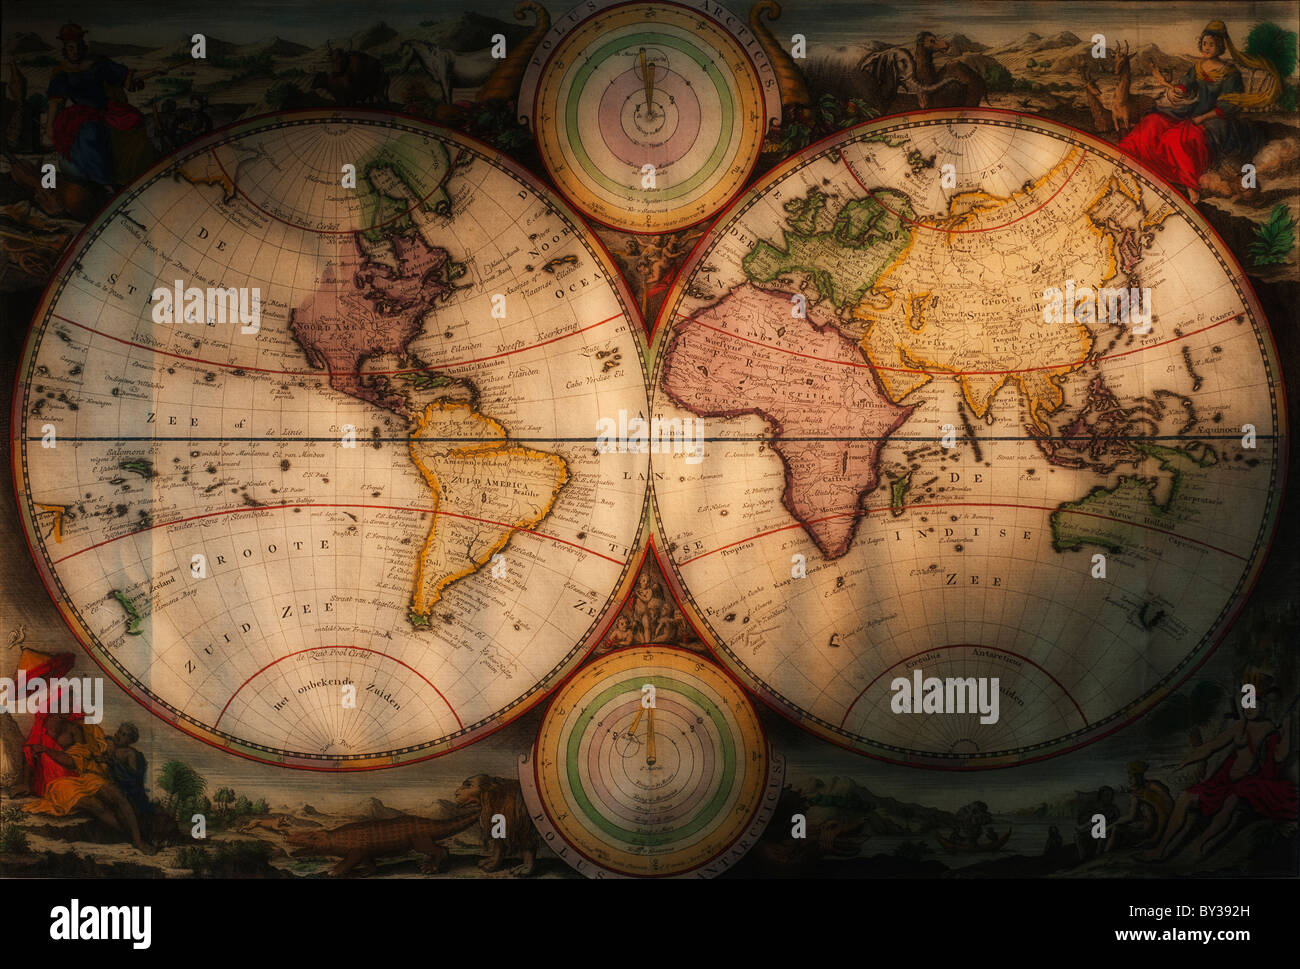 Old map of the world stock photos old map of the world stock antique world map stock image gumiabroncs Images